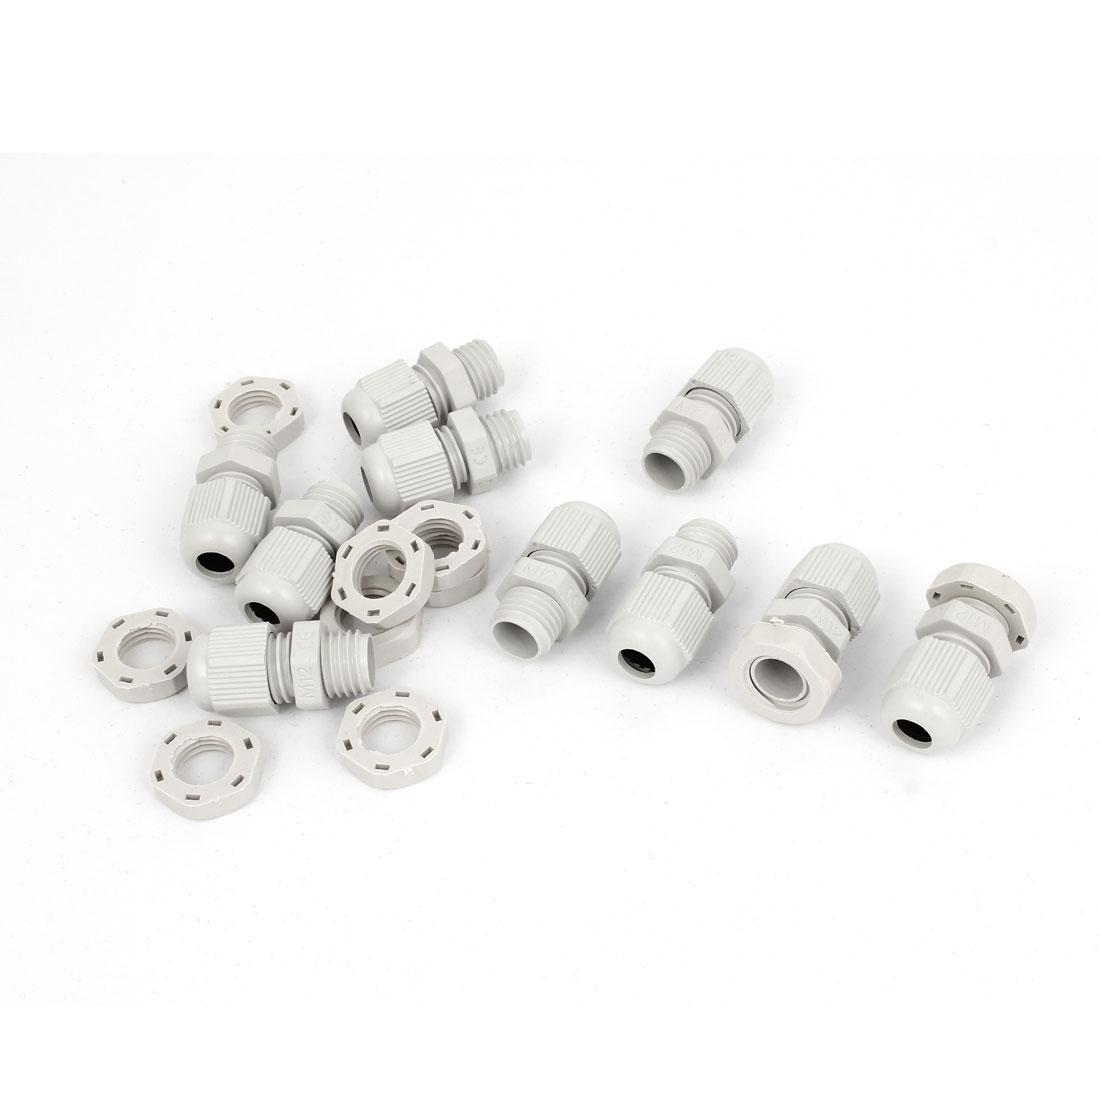 10 Pcs M12 White Plastic 3-6.5mm Dia Waterproof Cable Glands Connectors